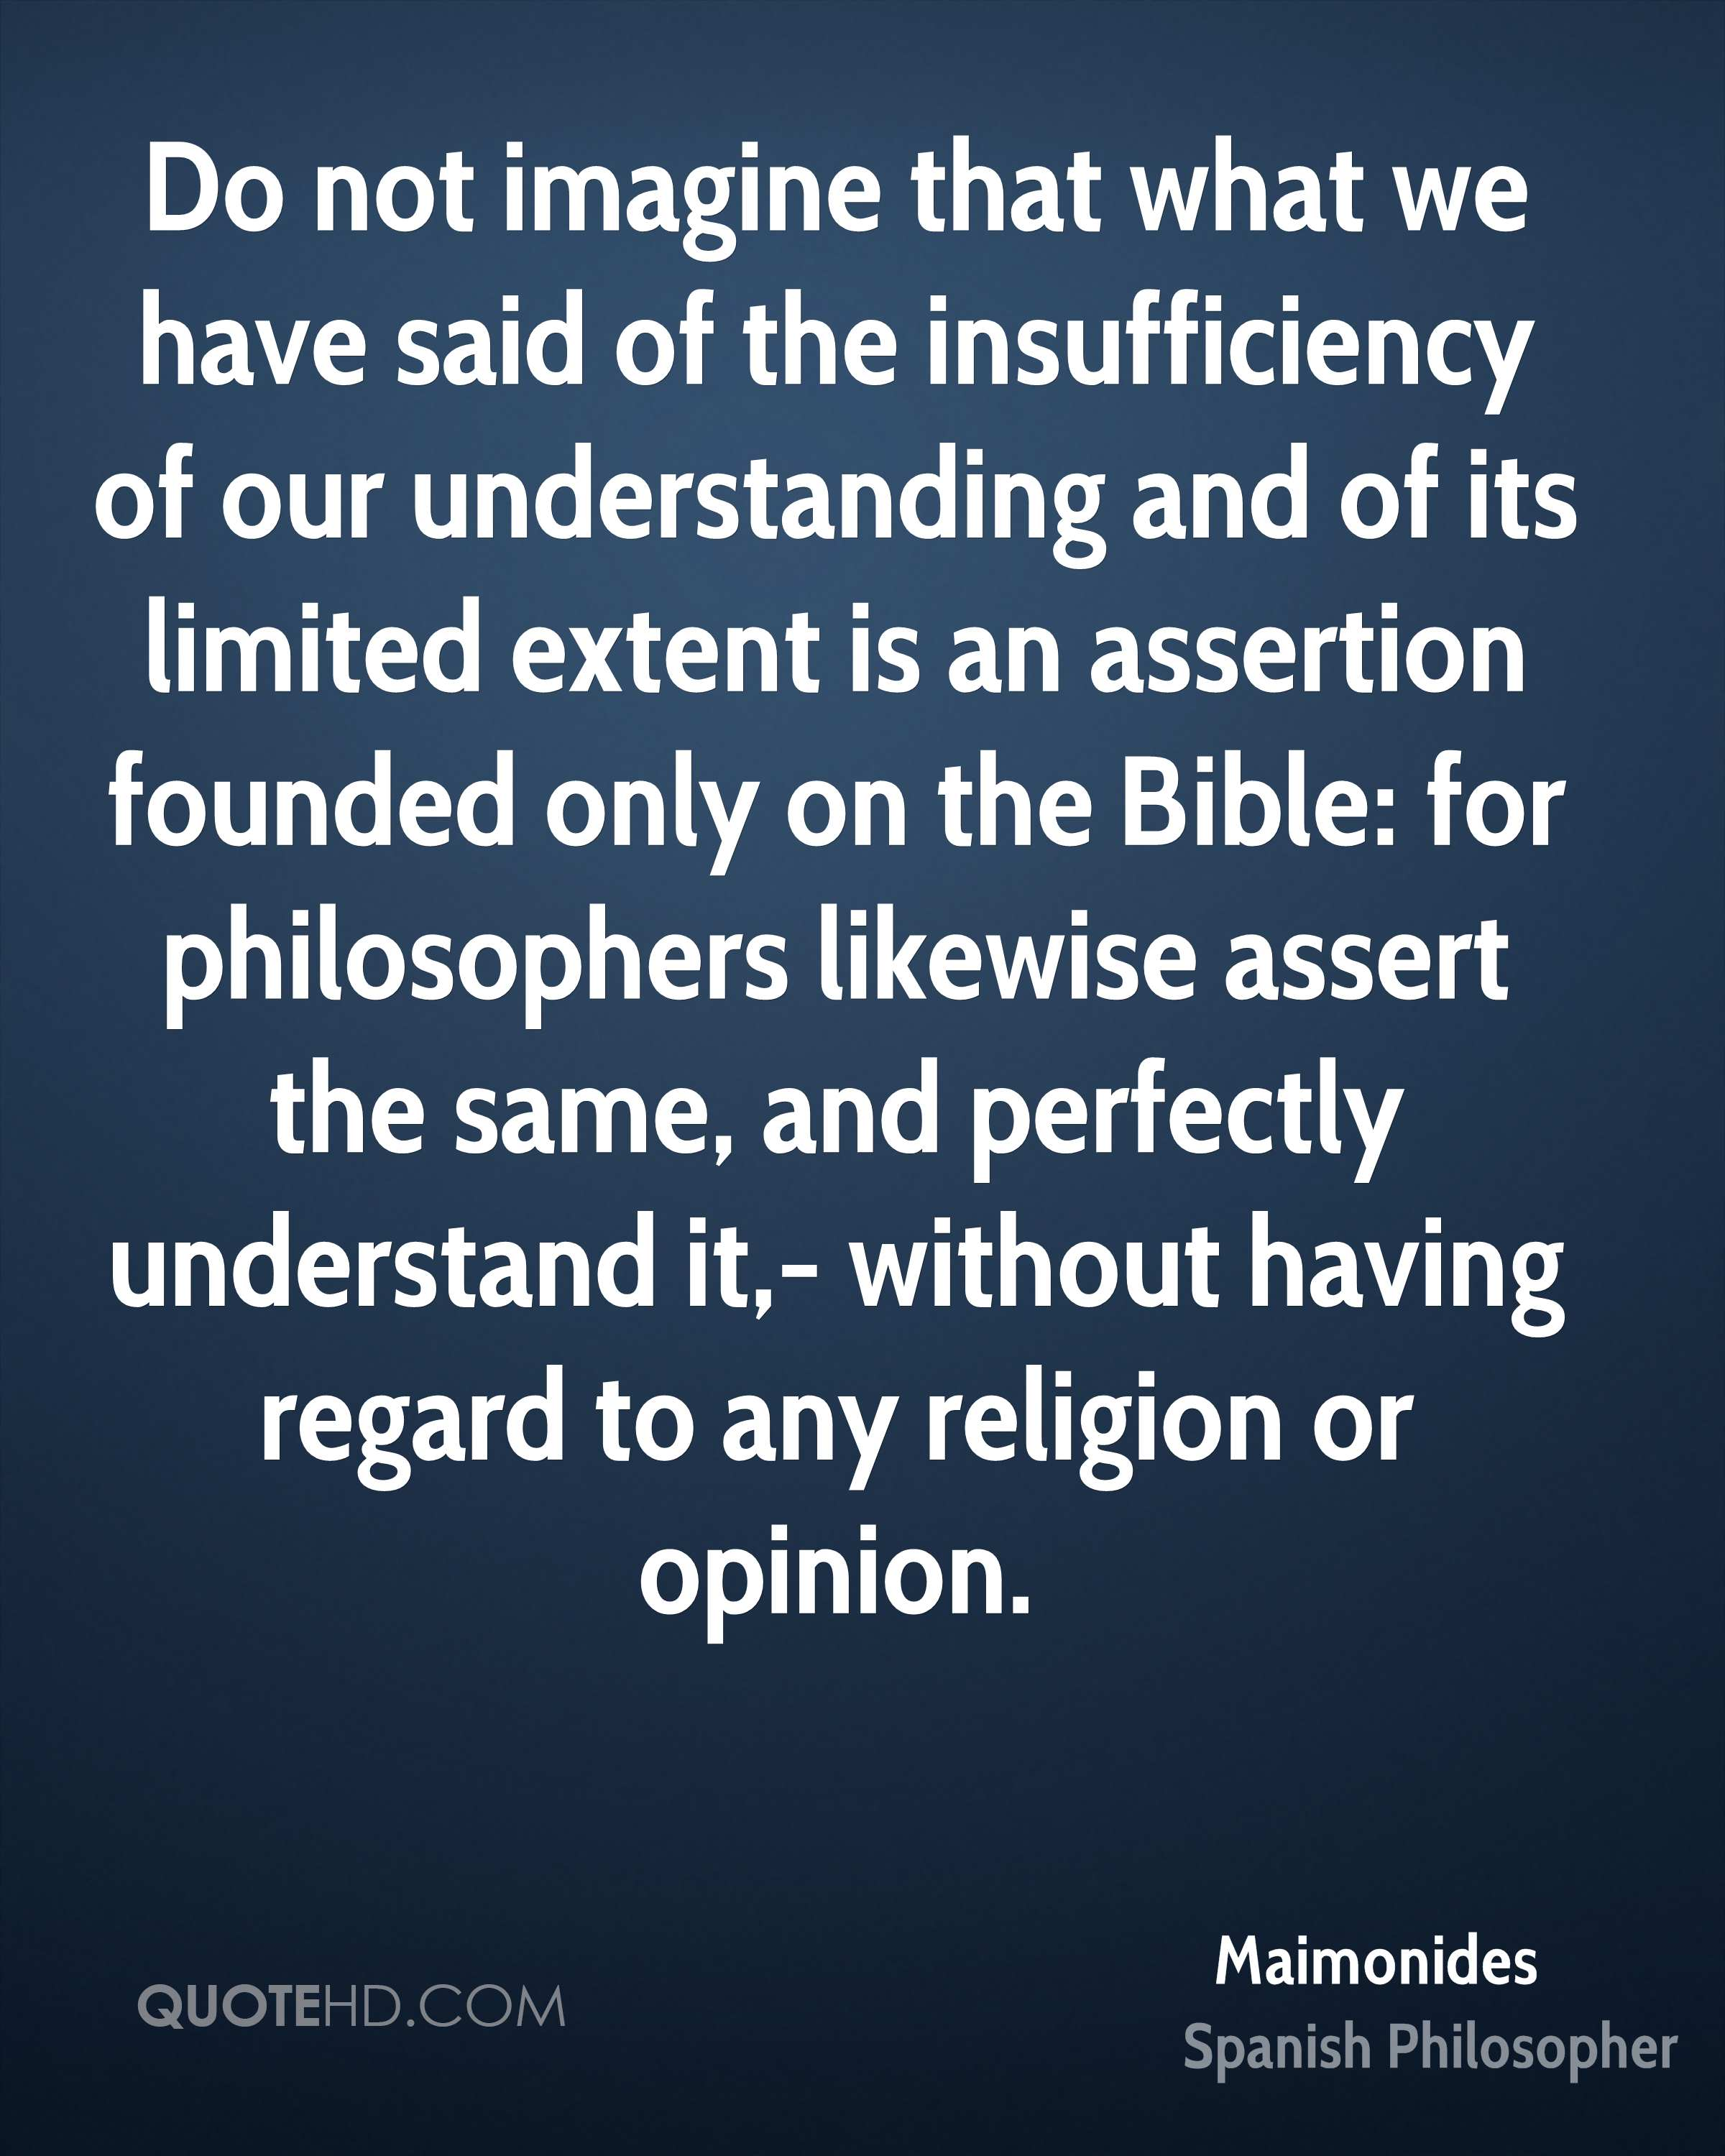 Do not imagine that what we have said of the insufficiency of our understanding and of its limited extent is an assertion founded only on the Bible: for philosophers likewise assert the same, and perfectly understand it,- without having regard to any religion or opinion.